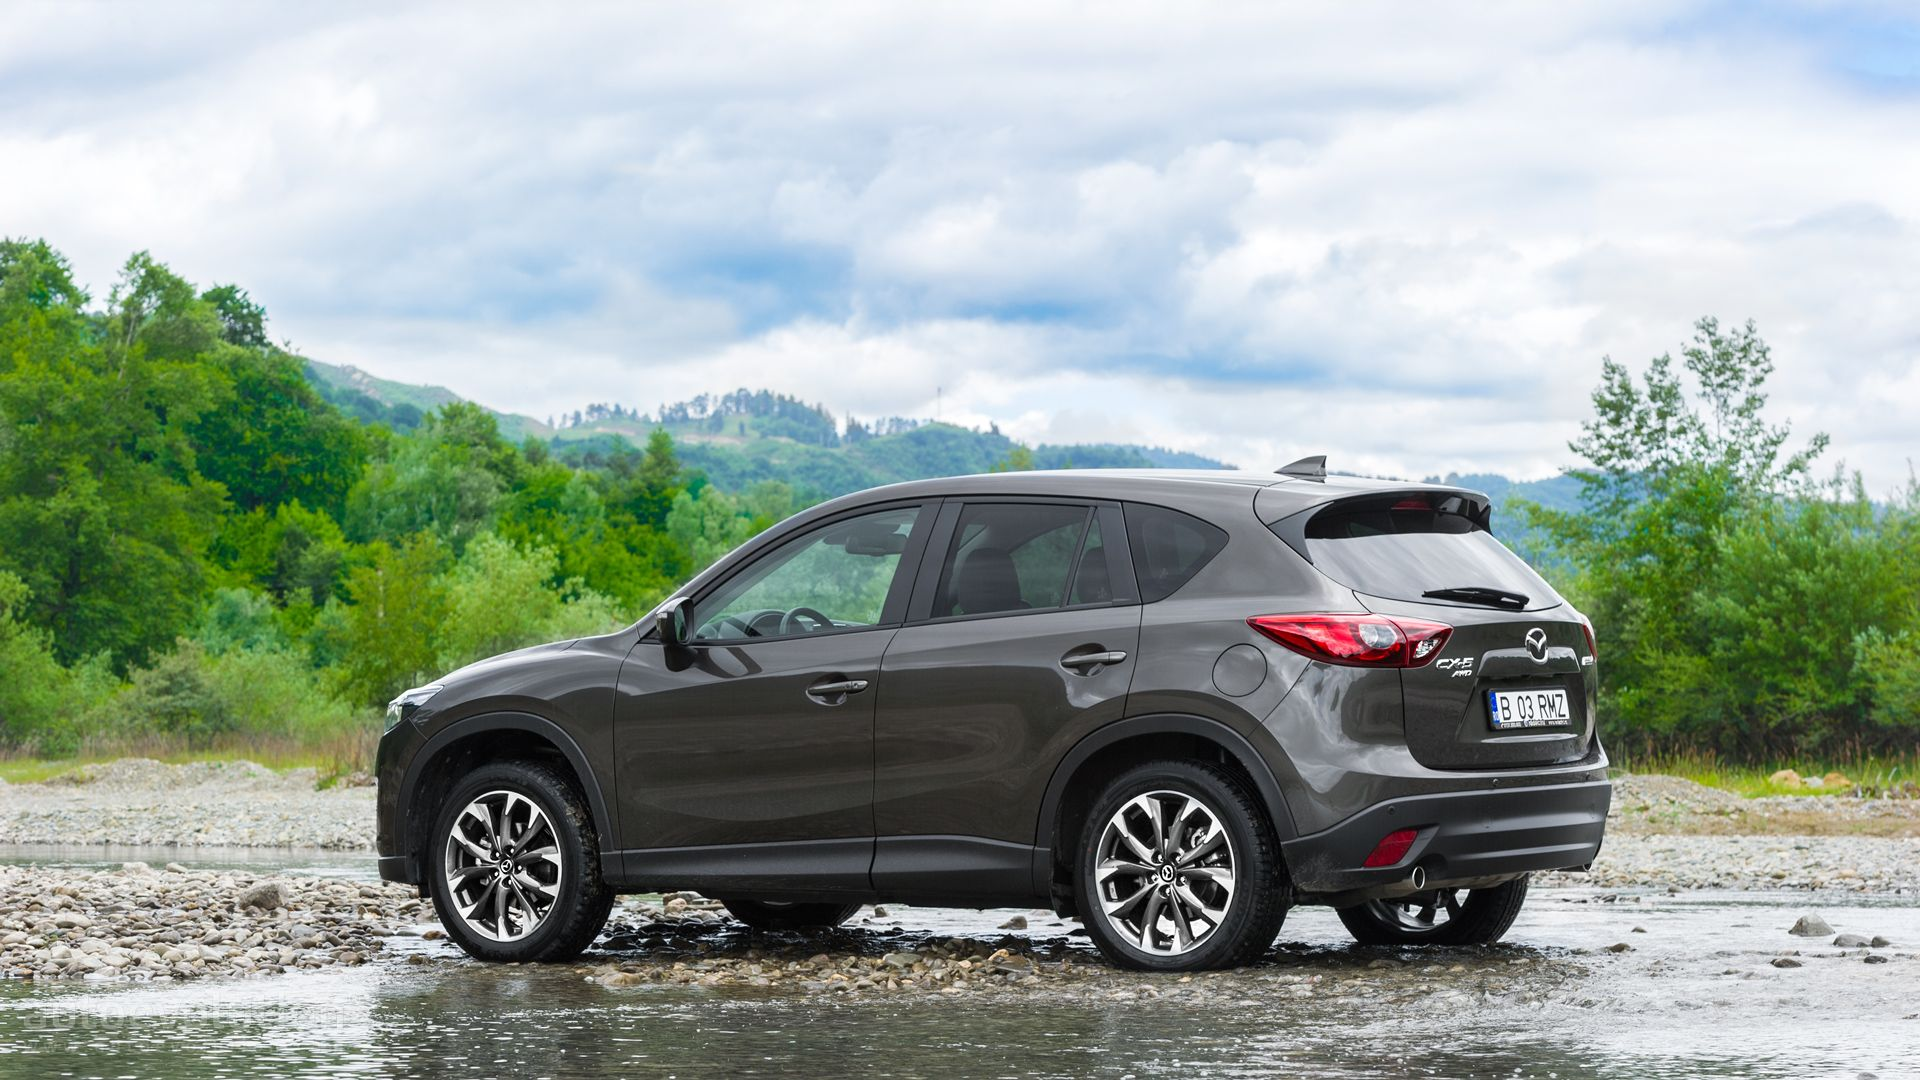 2016 mazda cx 5 facelift tested reinventing a paragon autoevolution. Black Bedroom Furniture Sets. Home Design Ideas